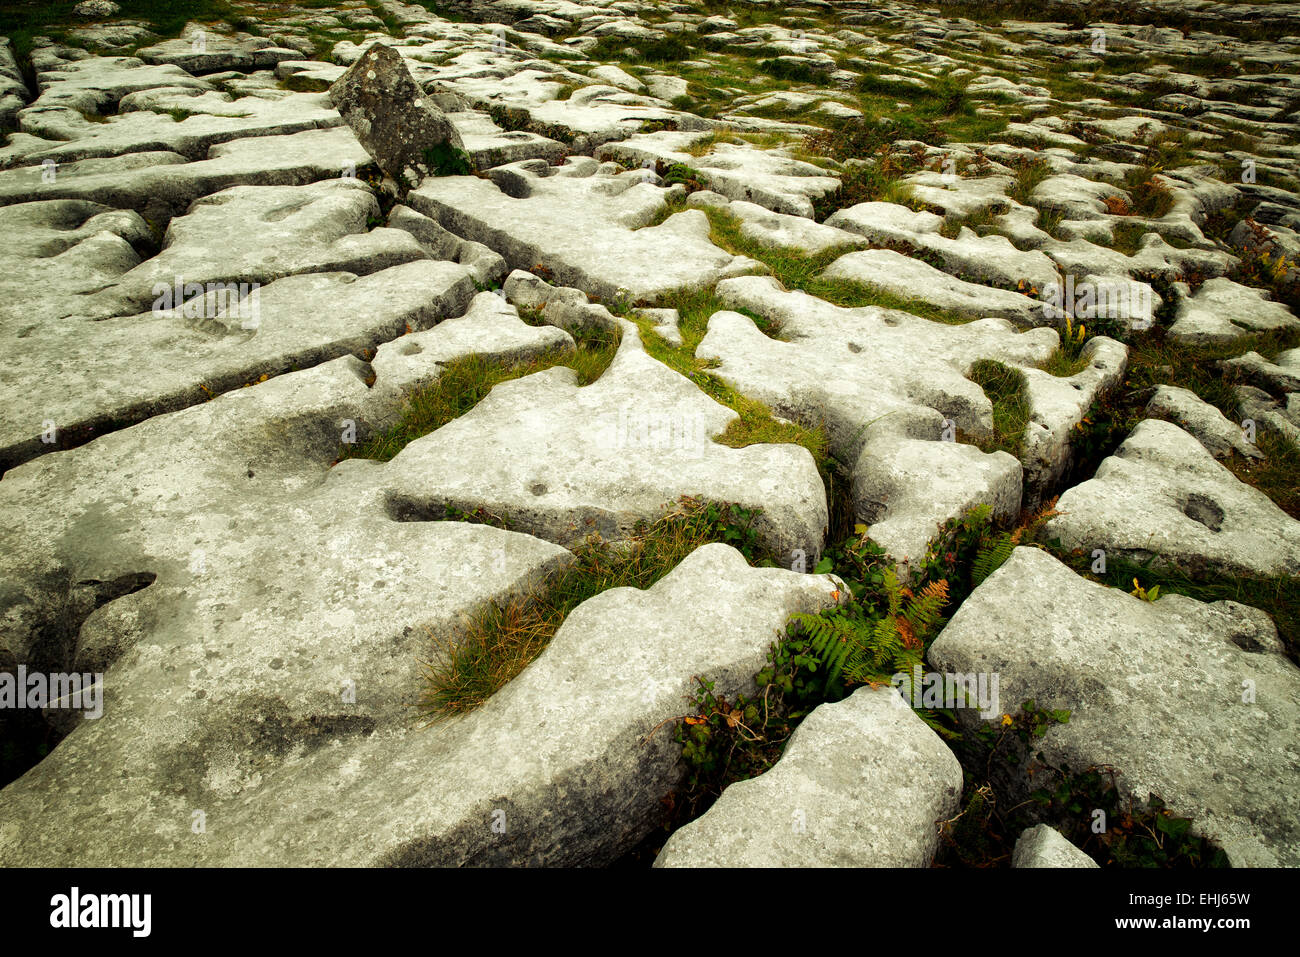 Karst rock formation near the Megalithic tomb called Poulnabrone. The Burren, Ireland - Stock Image